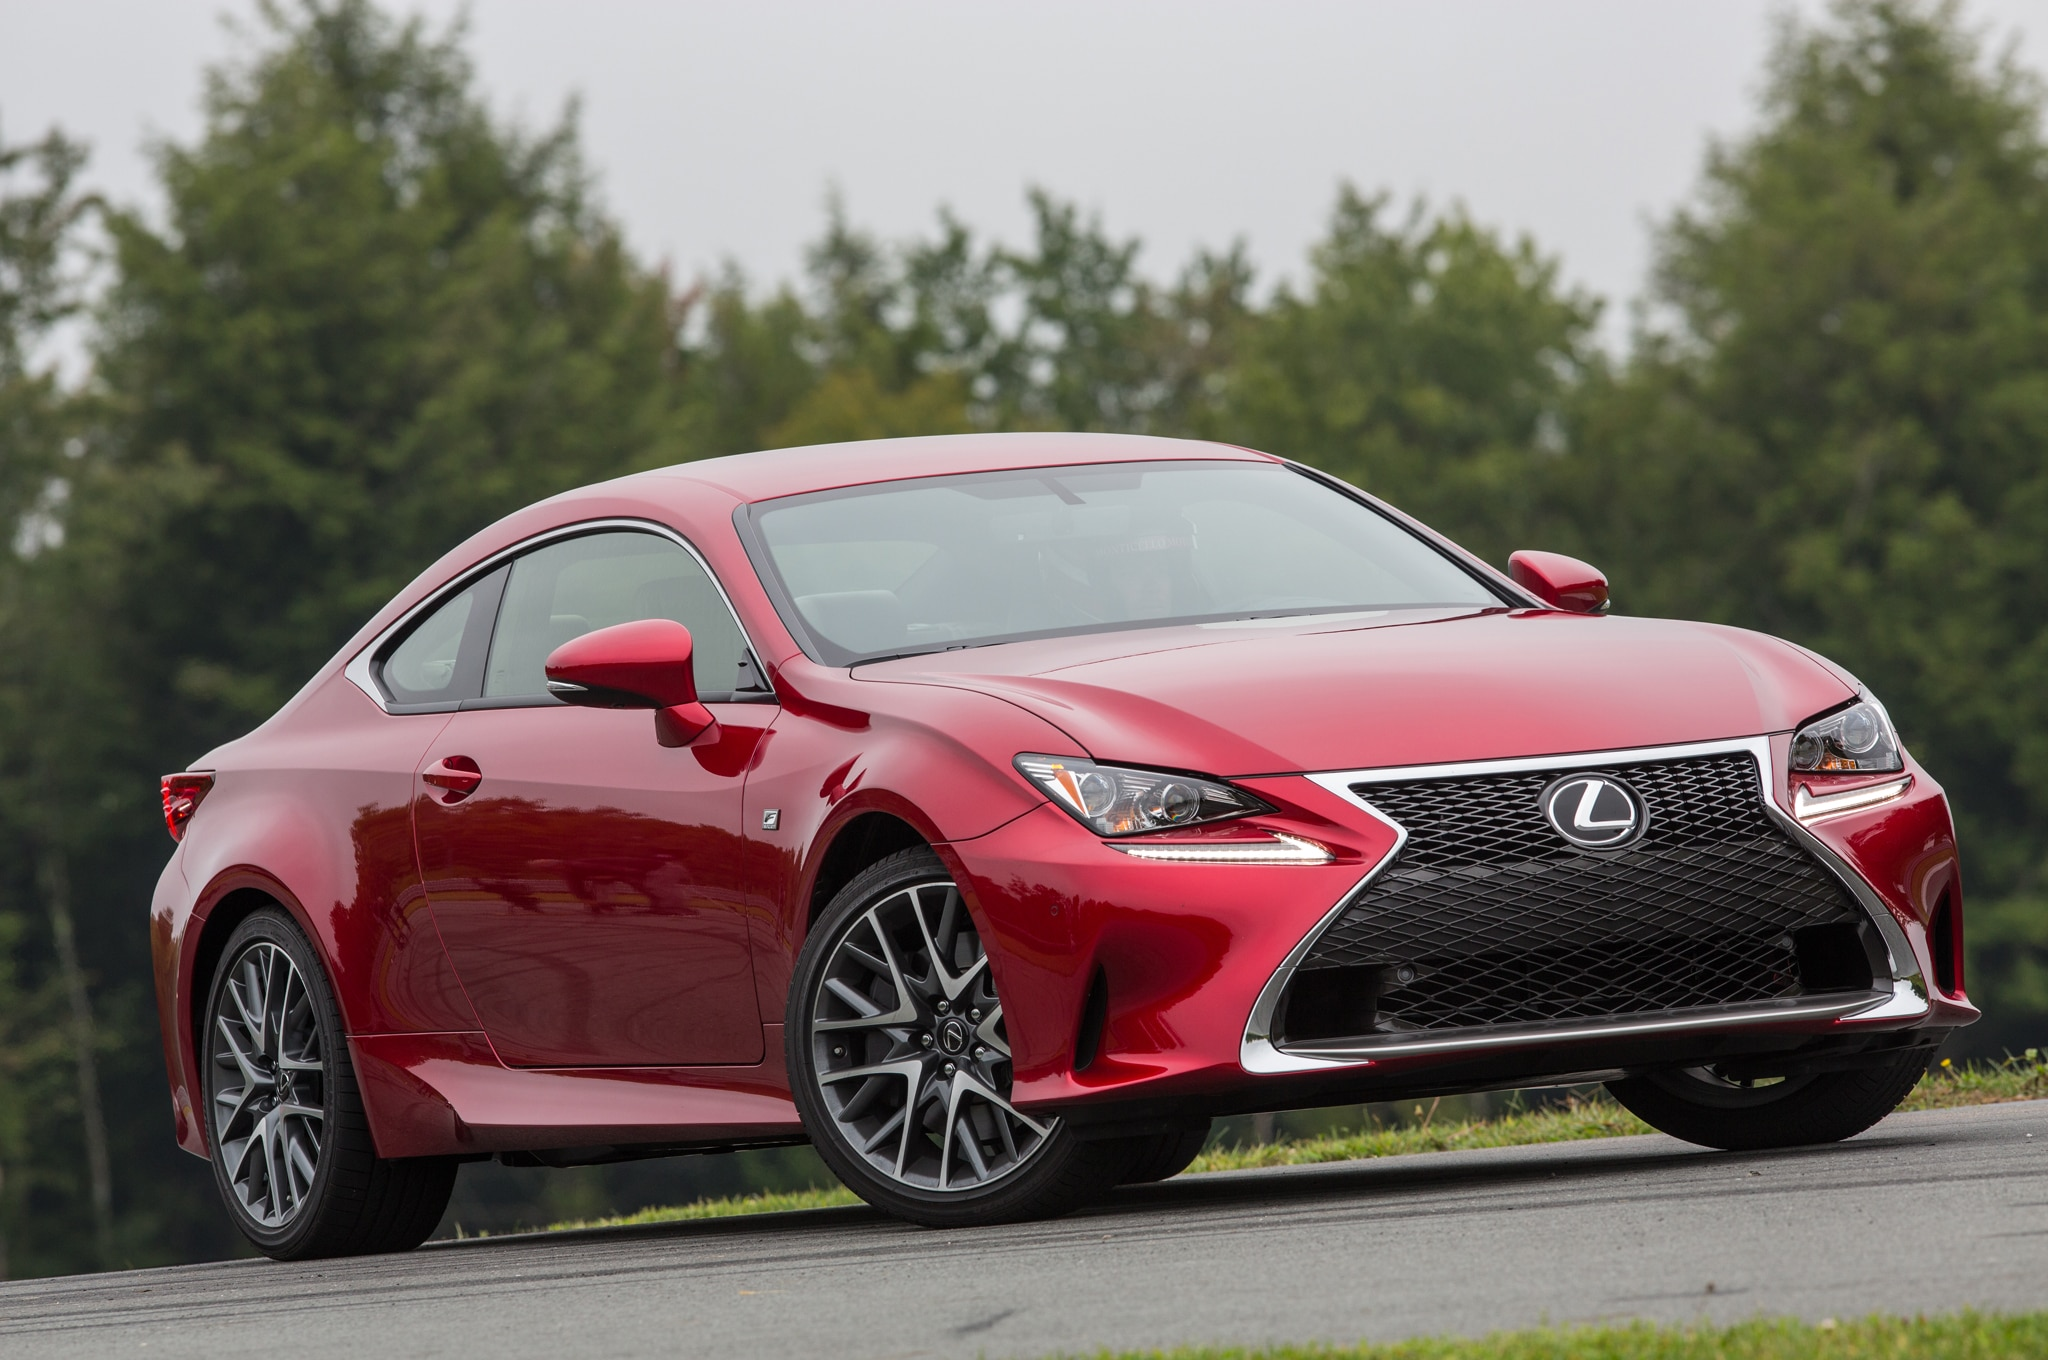 2016 lexus rc 200t confirmed for u s with turbo four engine. Black Bedroom Furniture Sets. Home Design Ideas